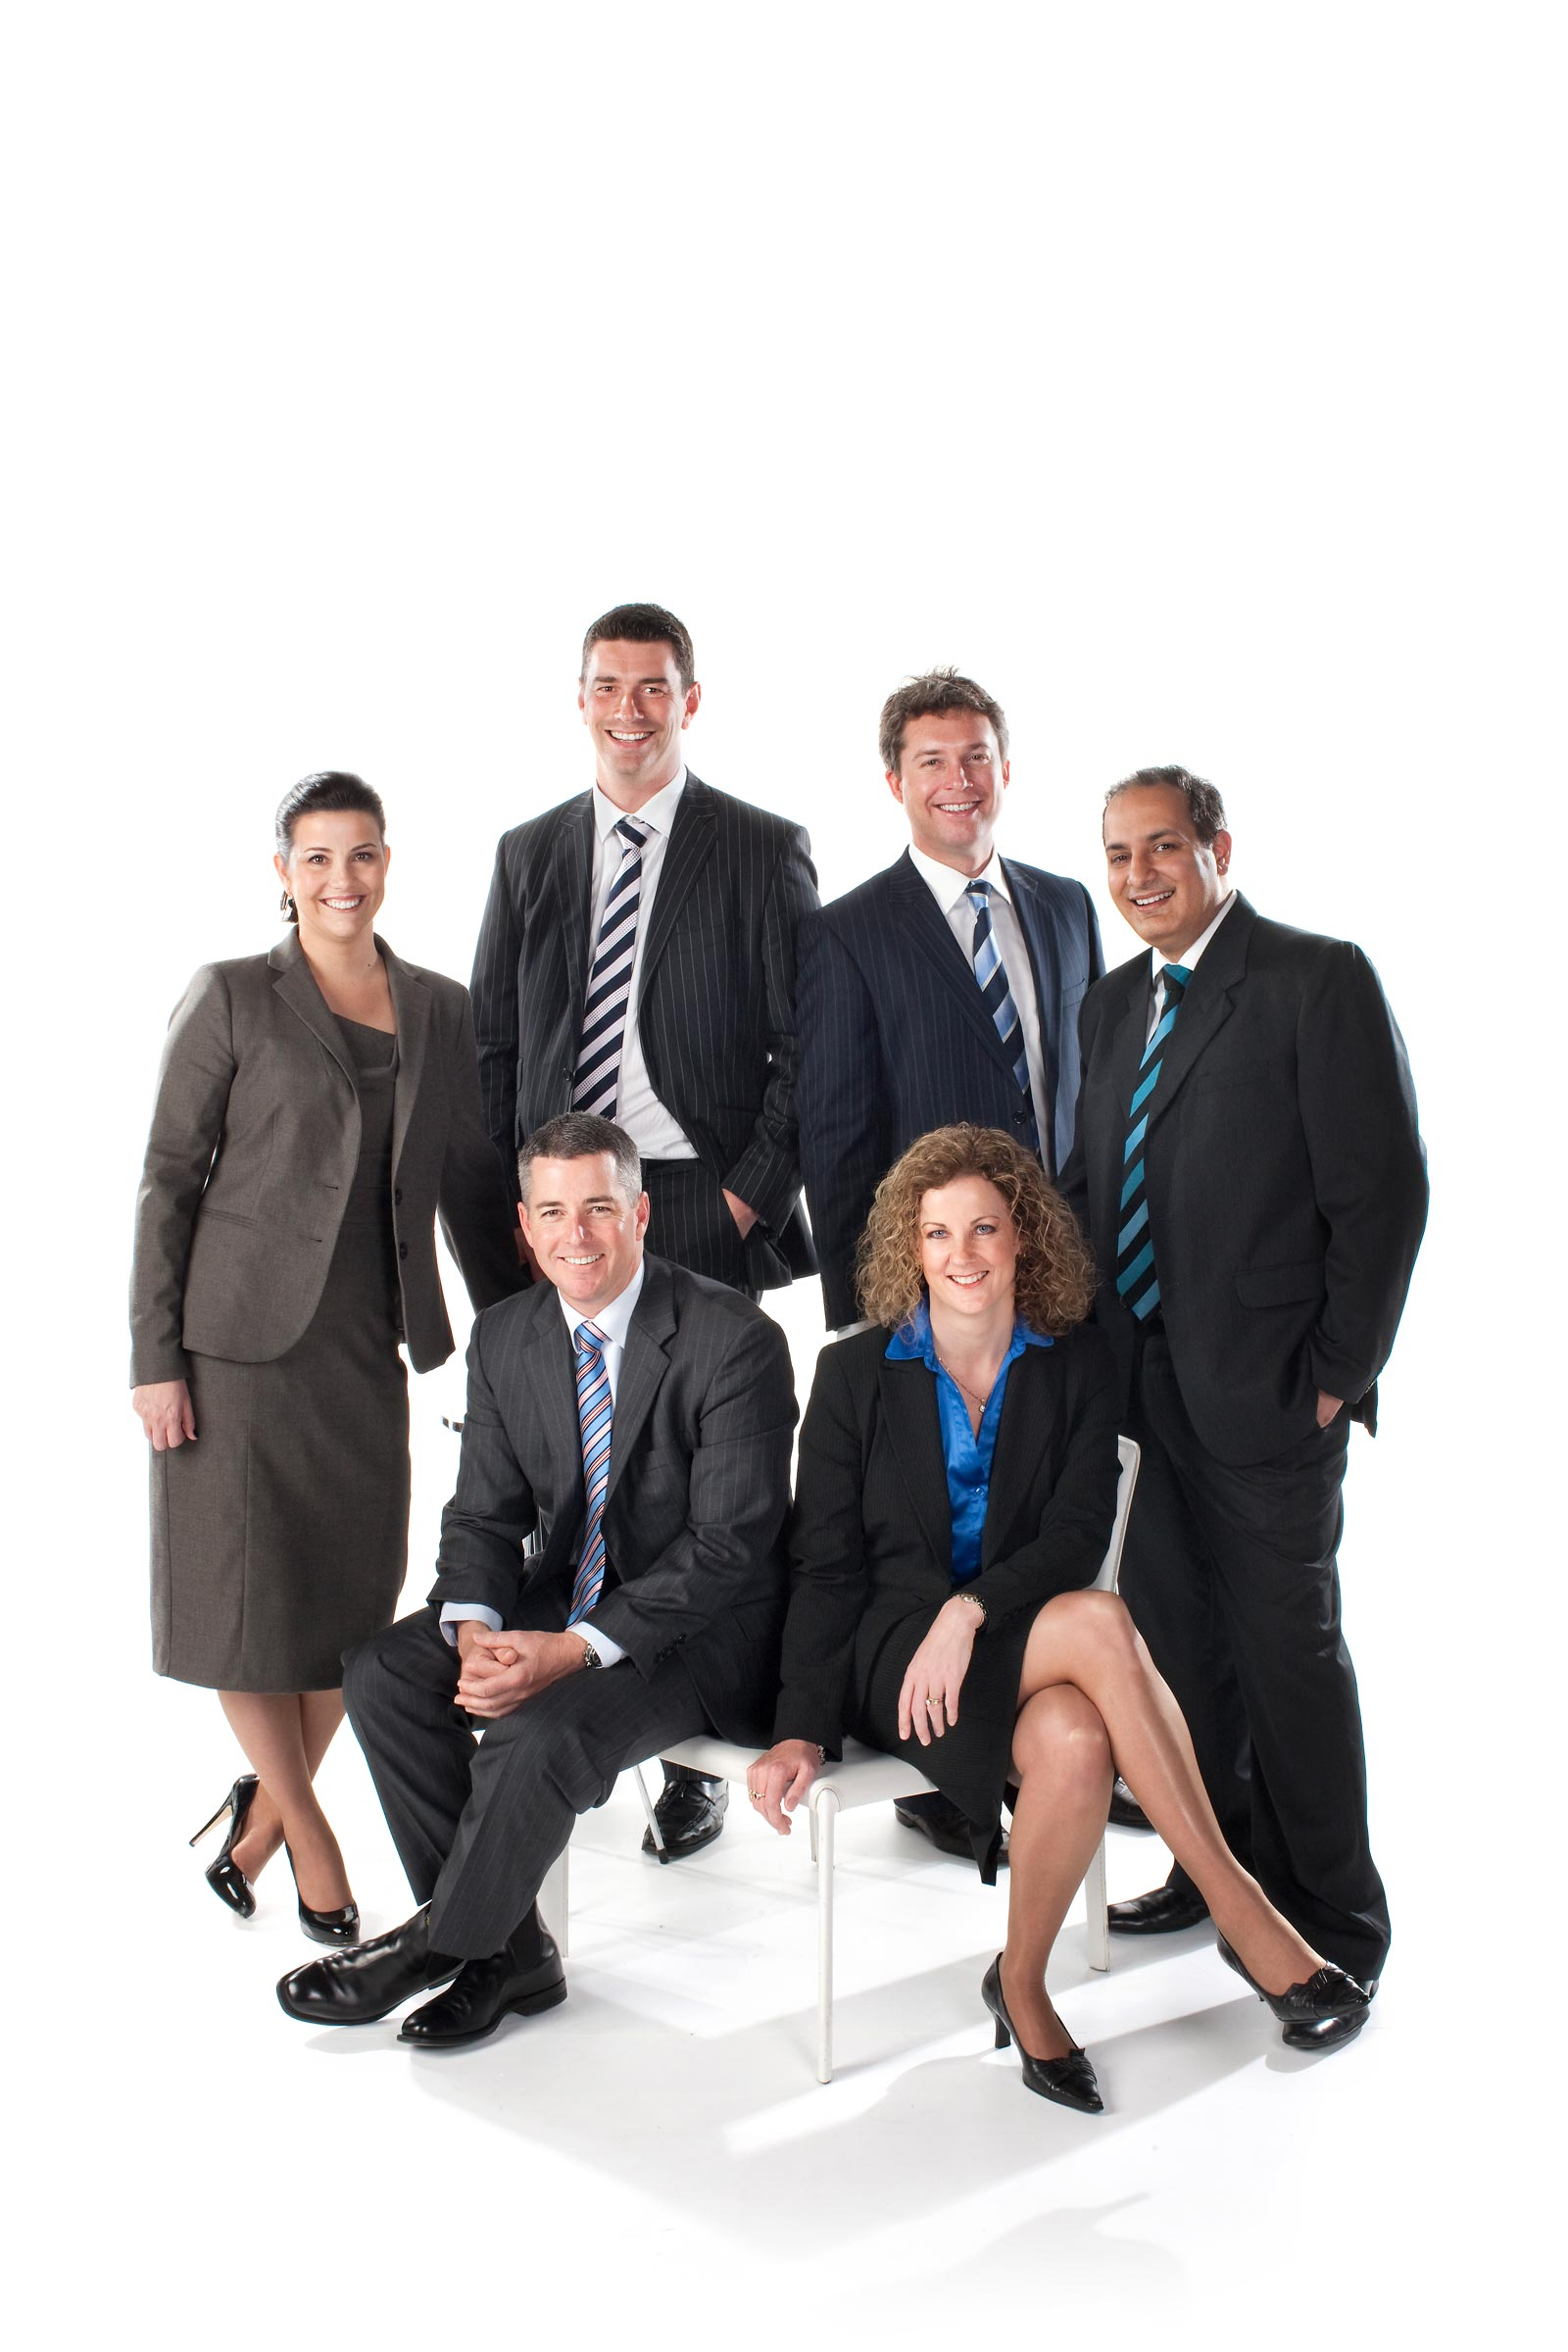 corporate group of 6 people on white background